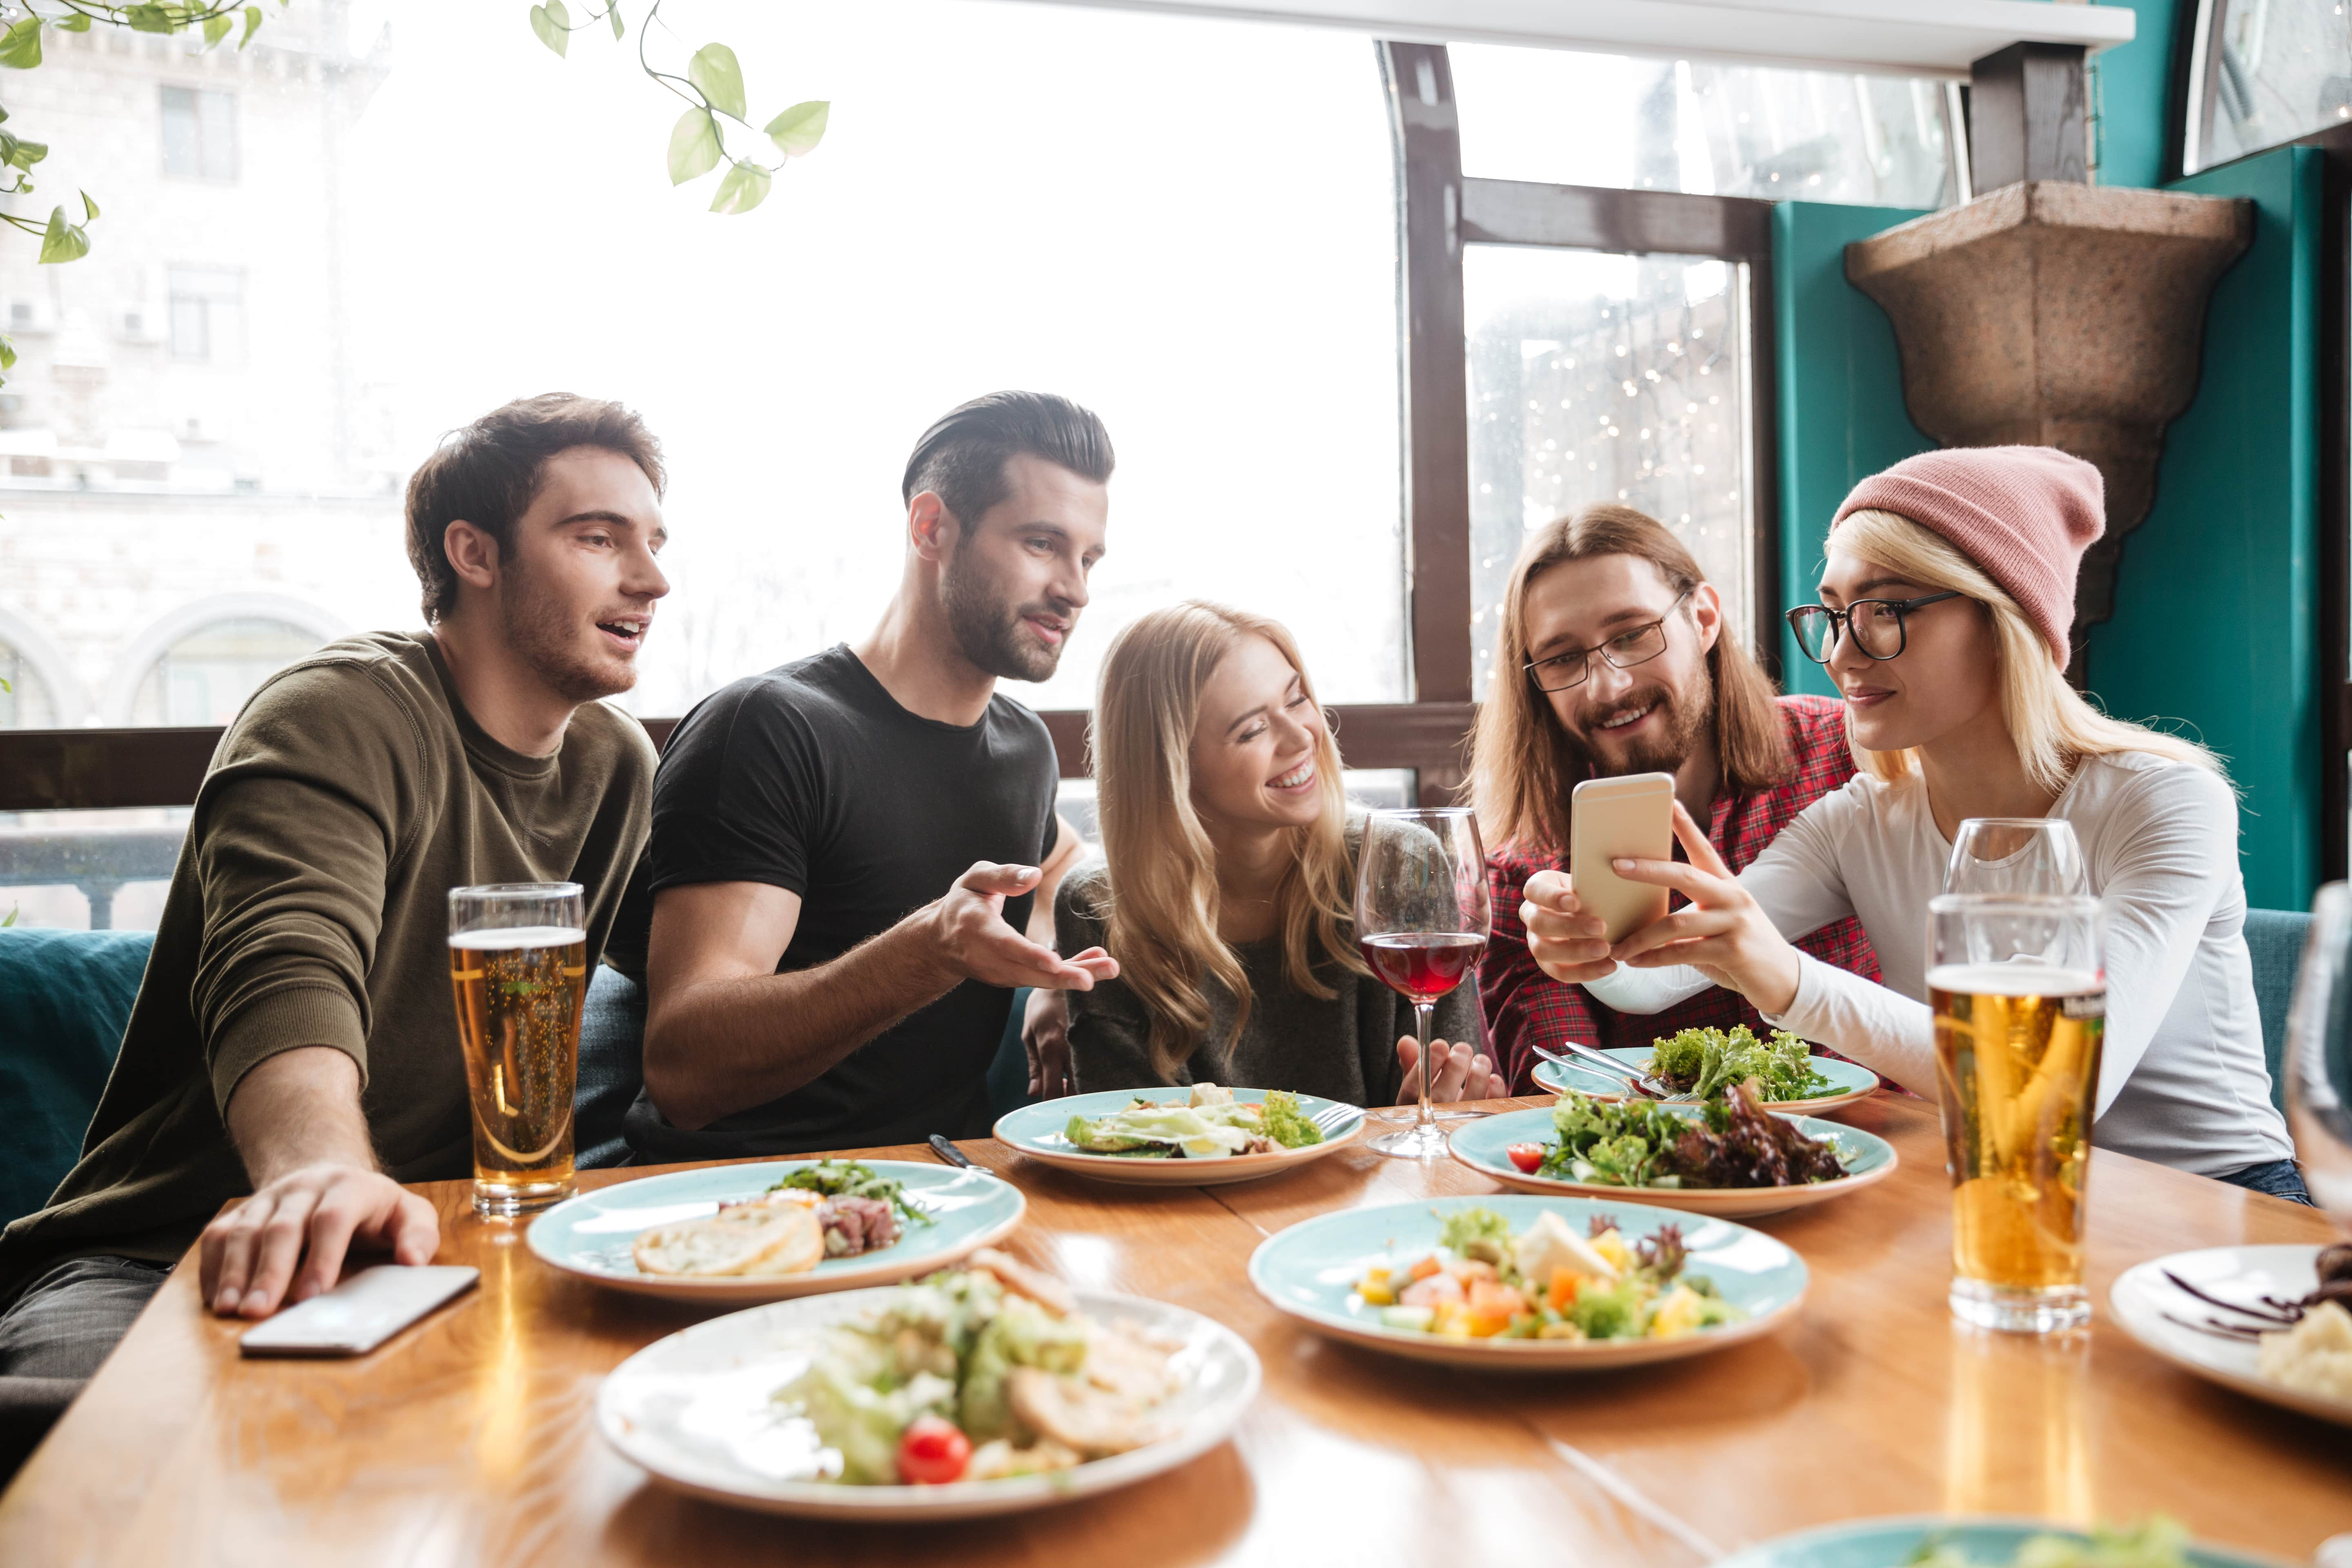 Mobile ordering ahead: how can restaurants capitalise on convenience?